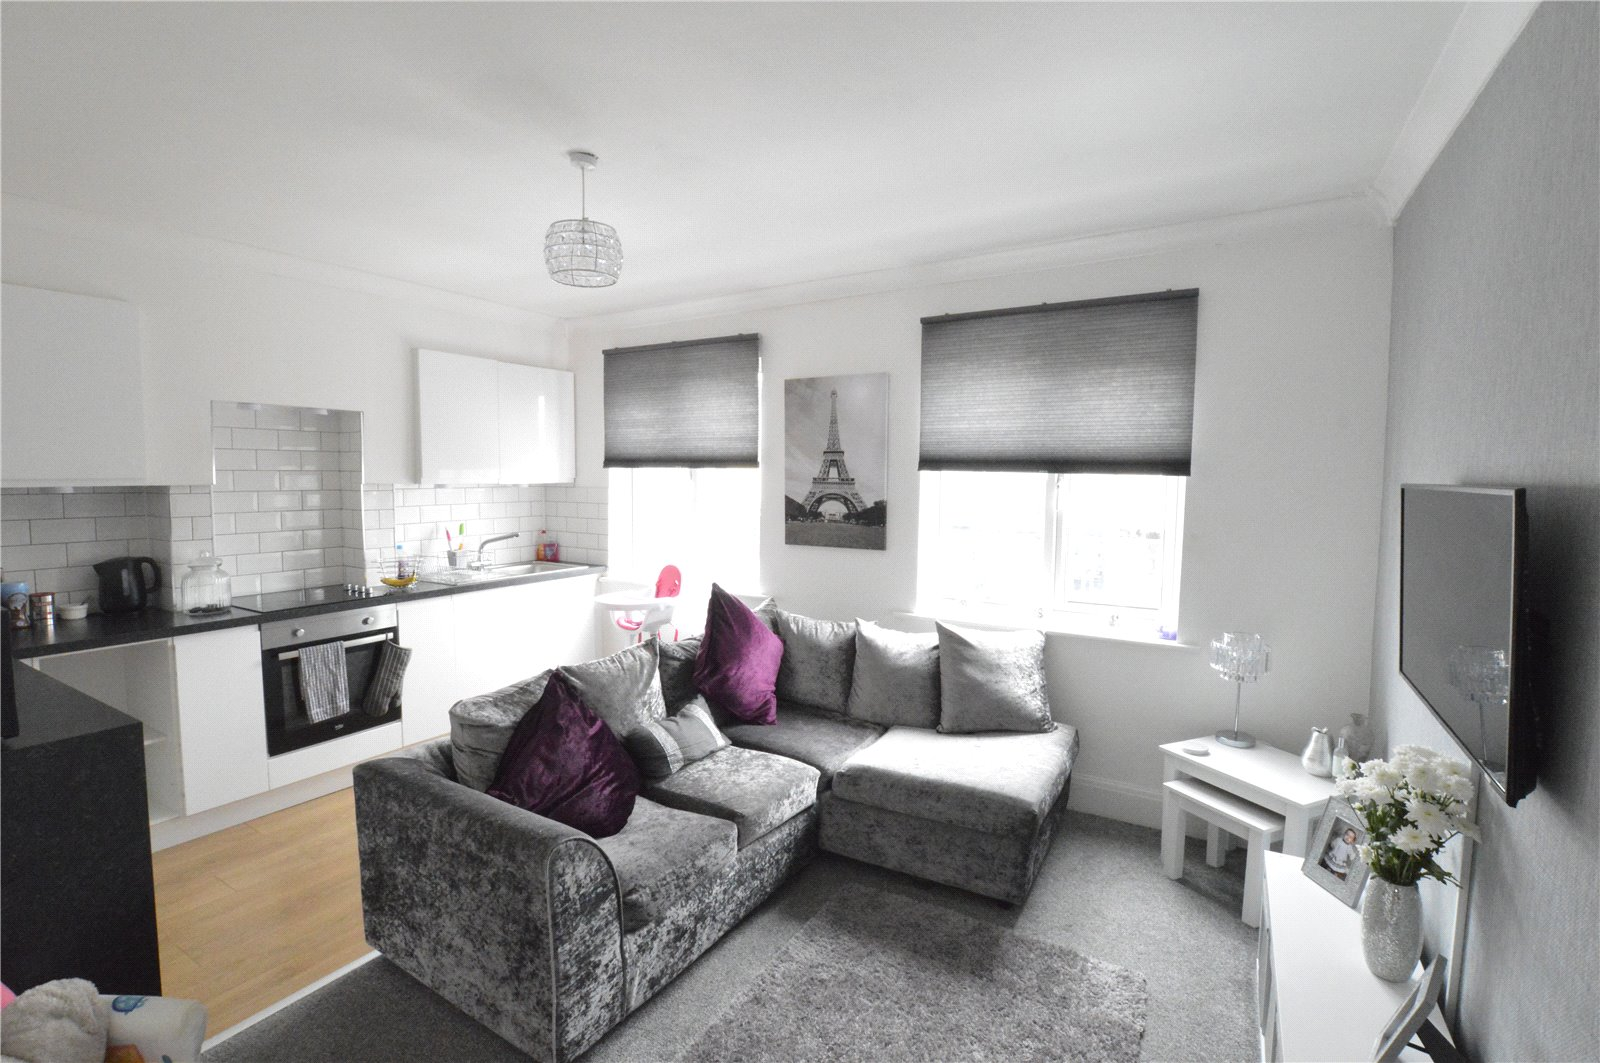 2 Bedrooms Flat for sale in Blackfen Road Sidcup Kent DA15